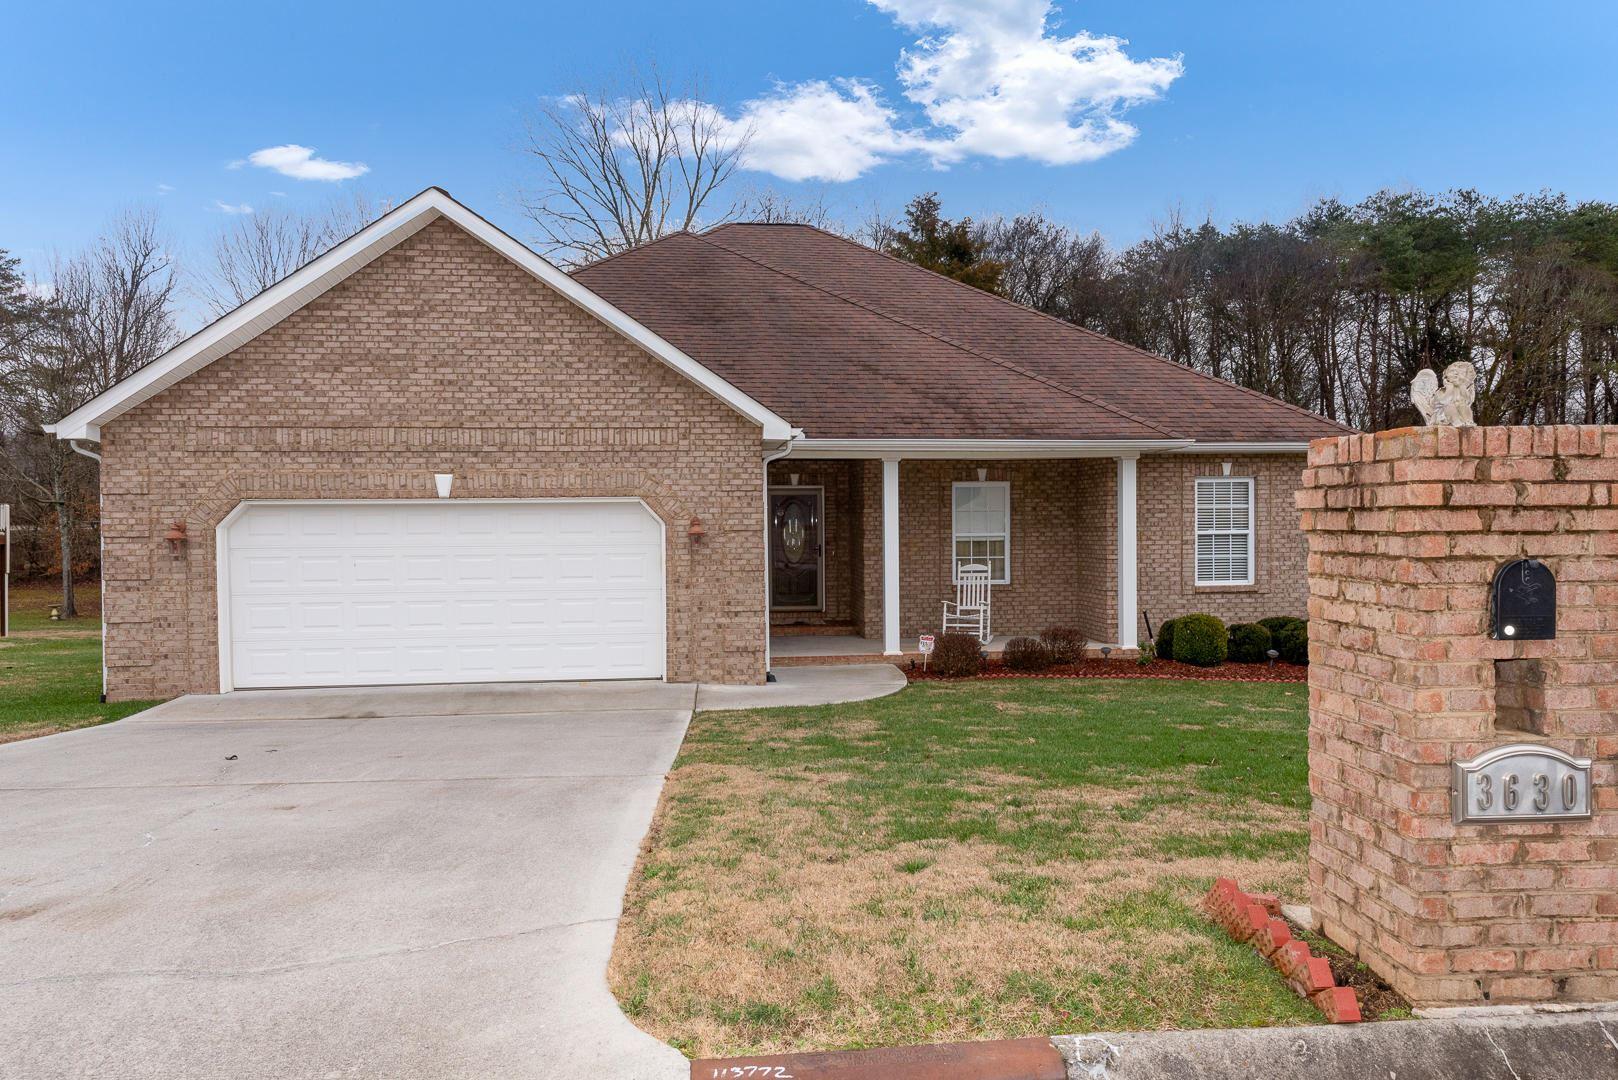 Photo of 3630 S Creek Rd, Knoxville, TN 37920 (MLS # 1140129)